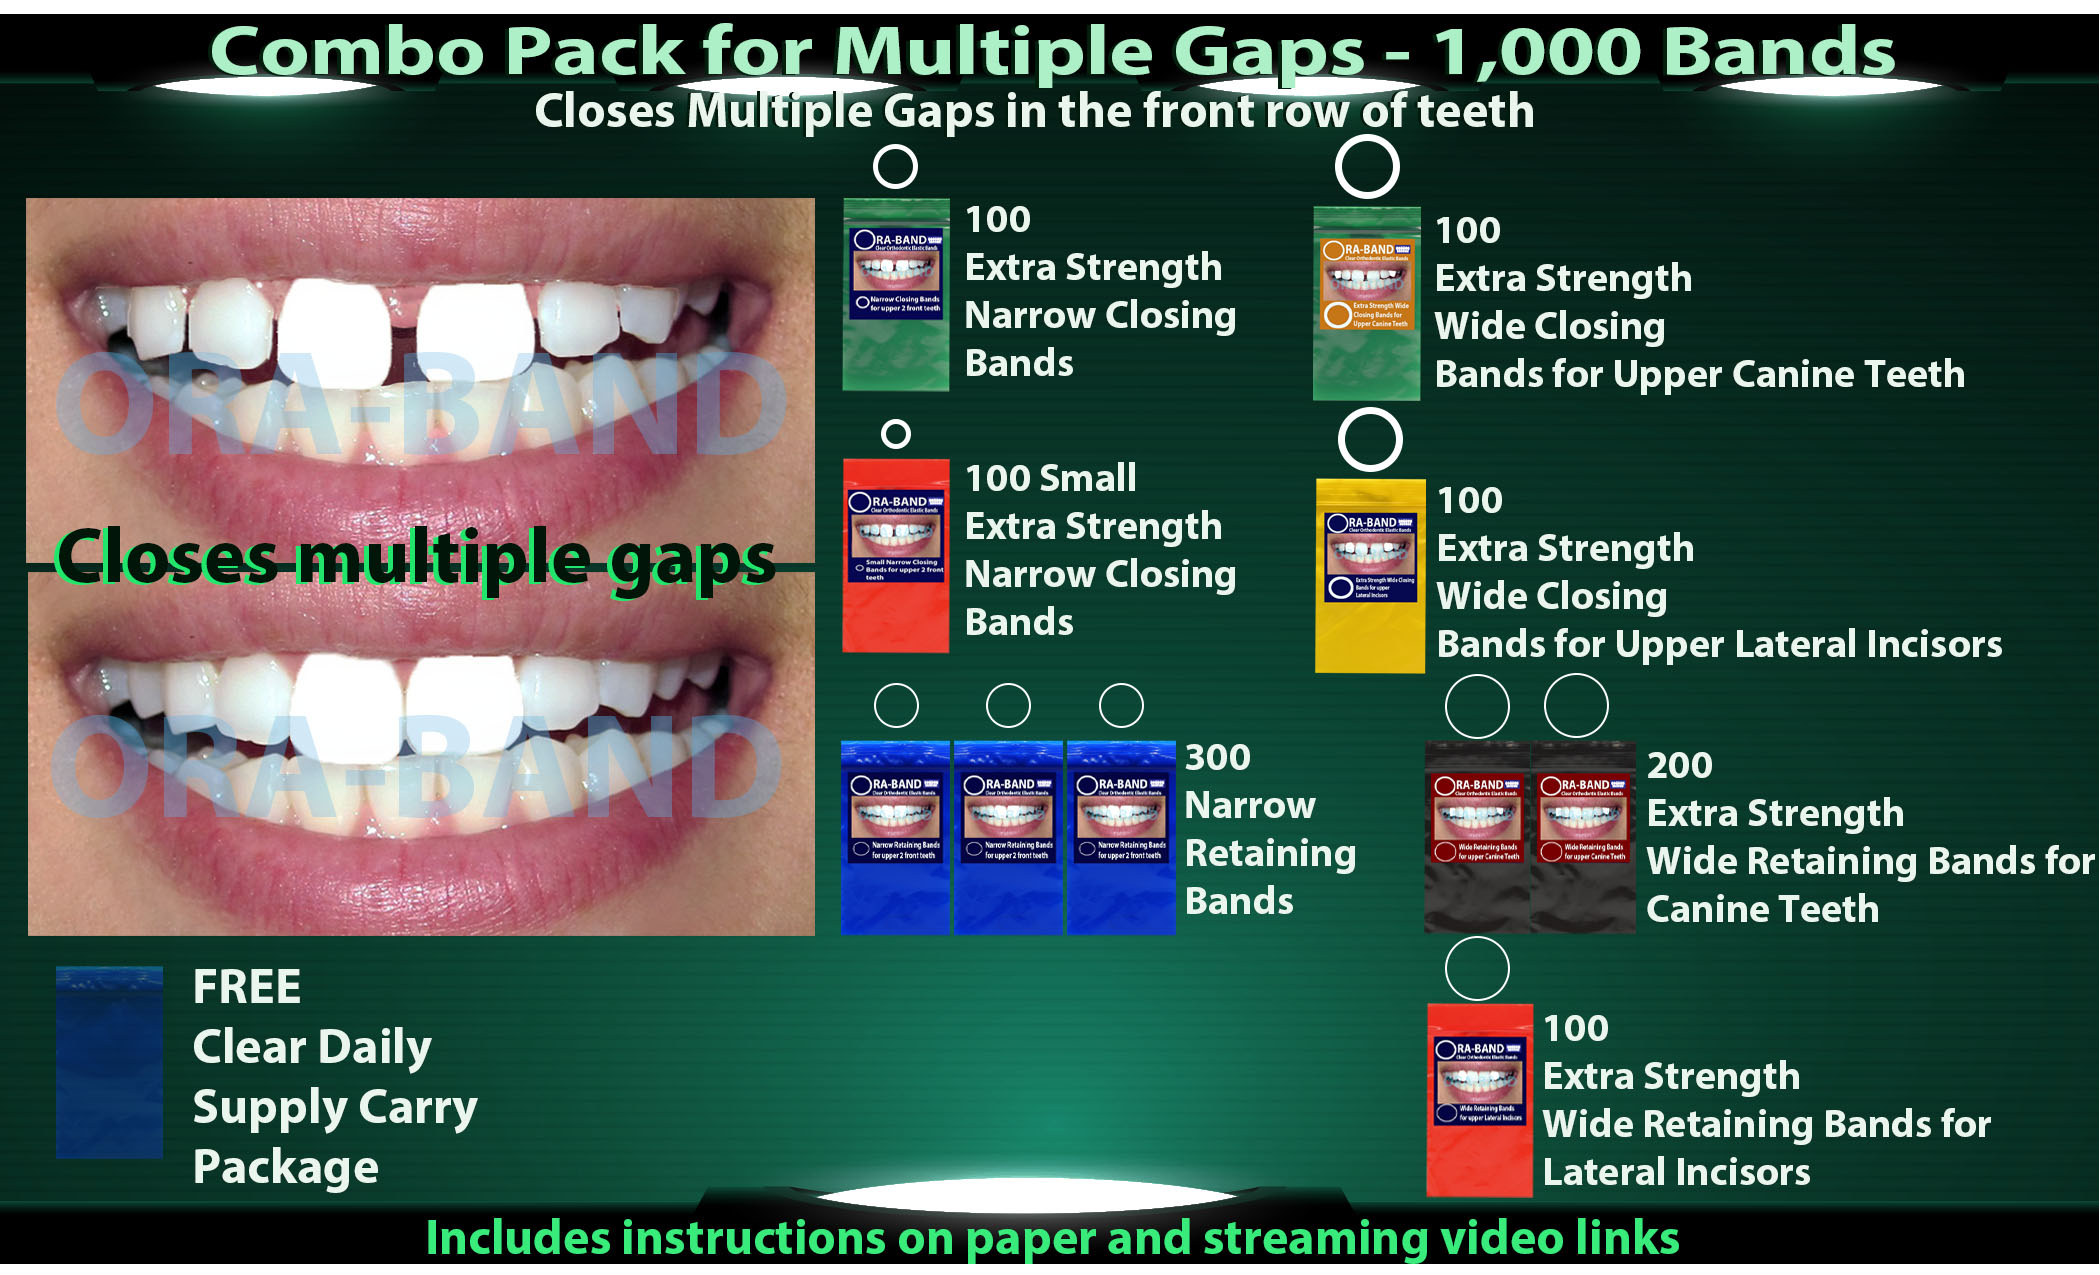 ORA-BAND 1,000 Band Combo Pack for Multiple Gaps in your front row of teeth